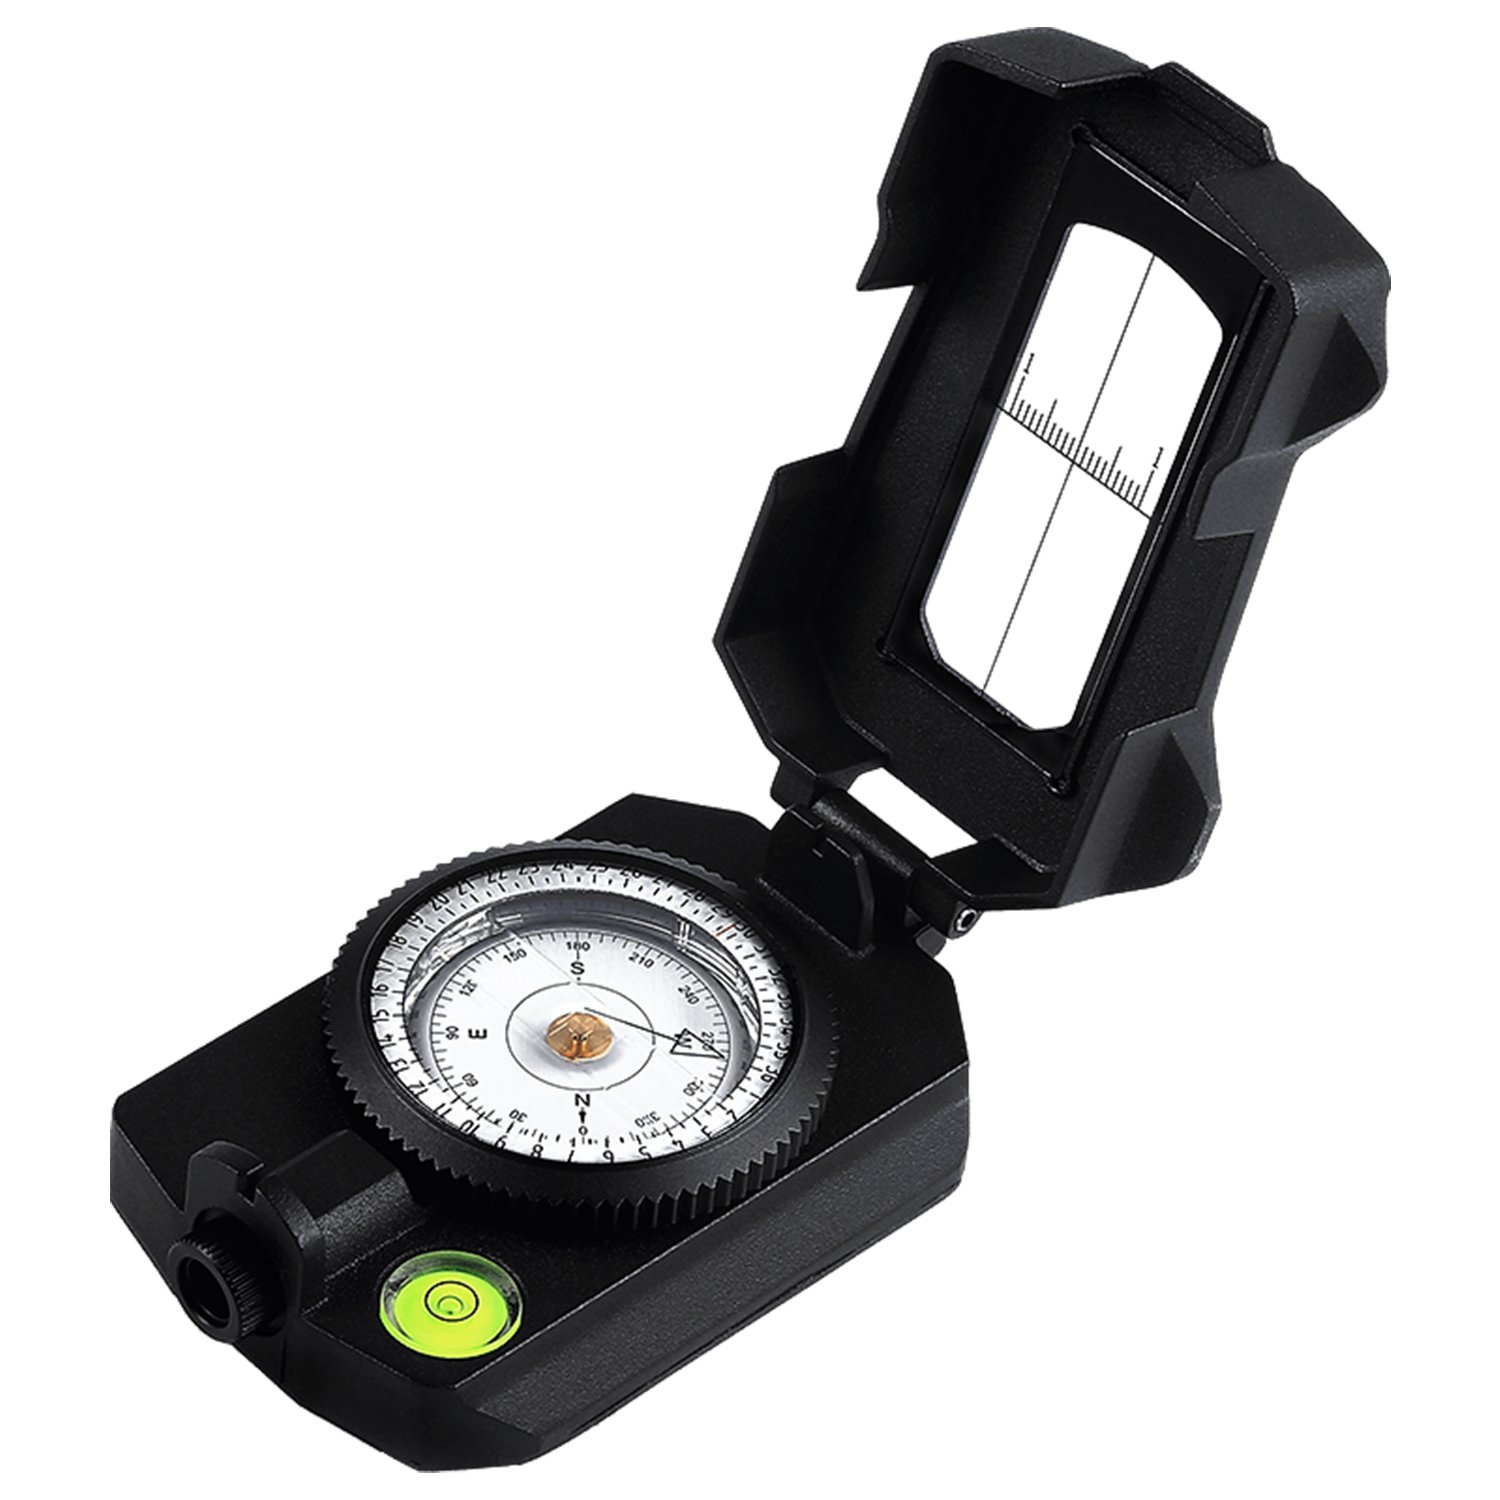 Eyeskey Multifunctional Military Metal Sighting Navigation Compass with Inclinometer